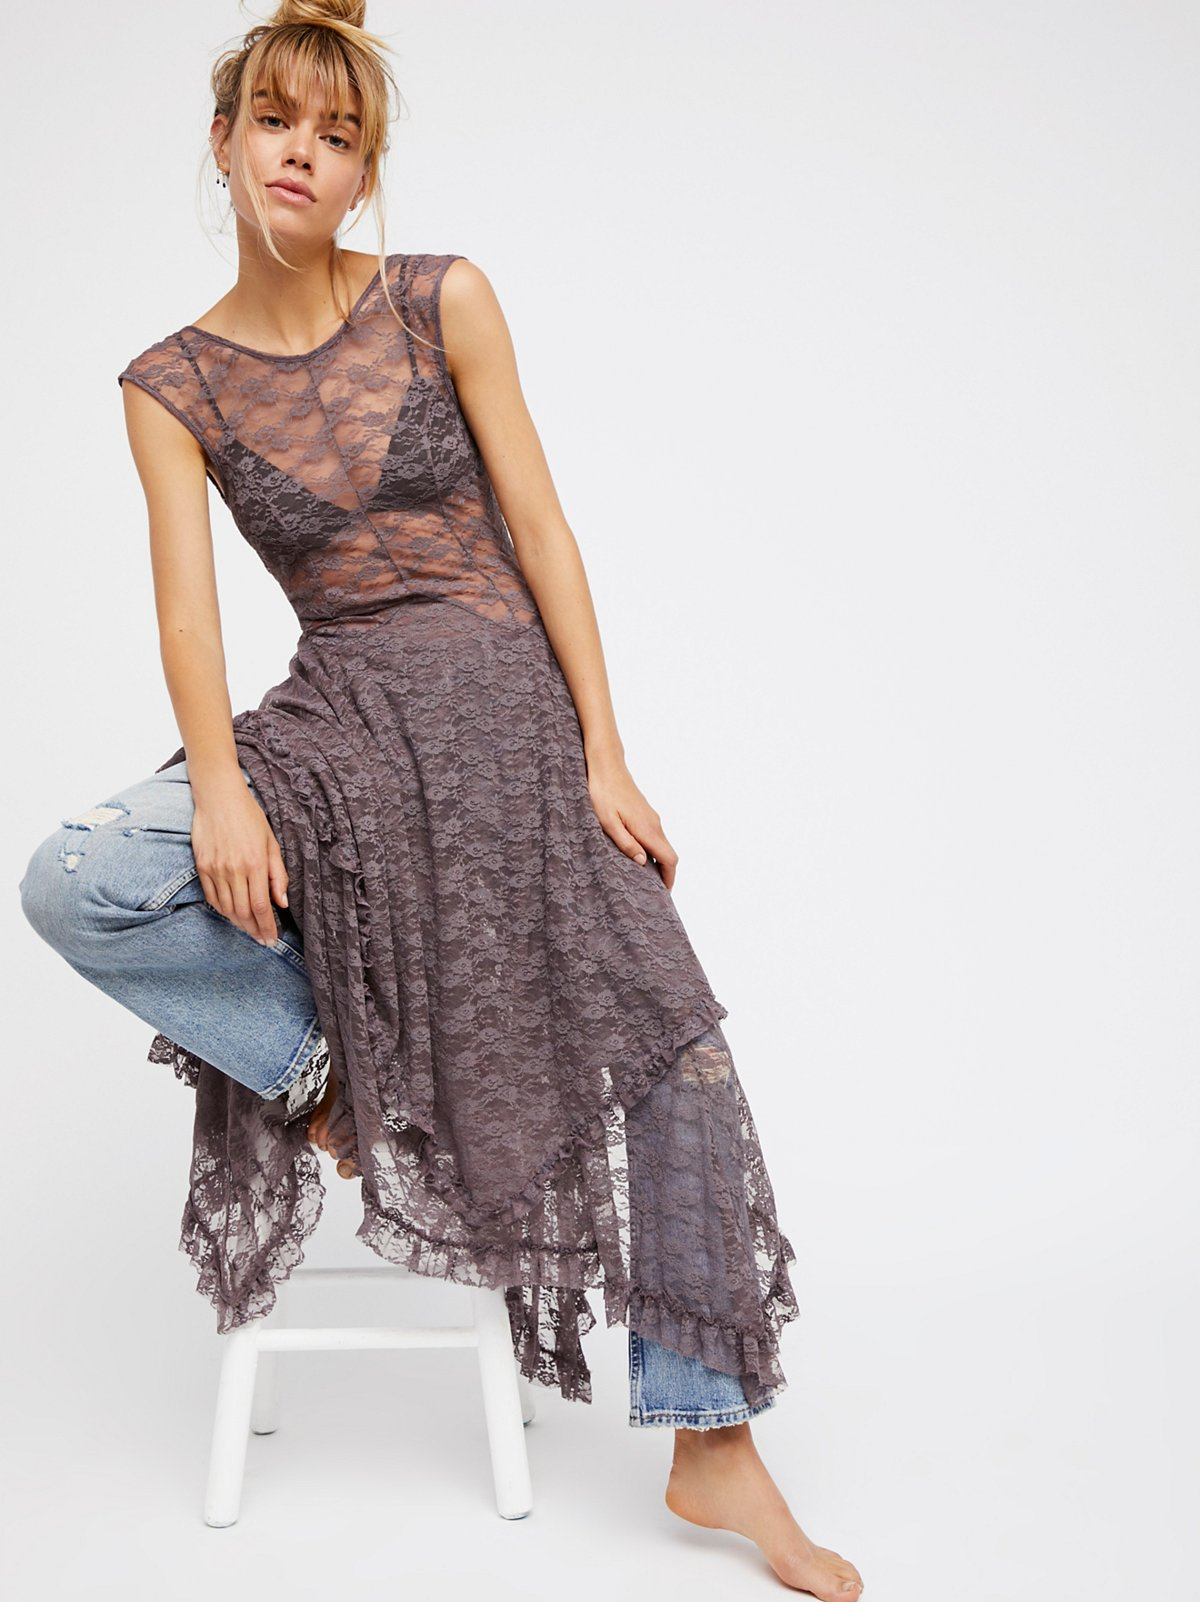 502ba0508c6d Intimately Rich Berry French Courtship Slip at Free People Clothing Boutique